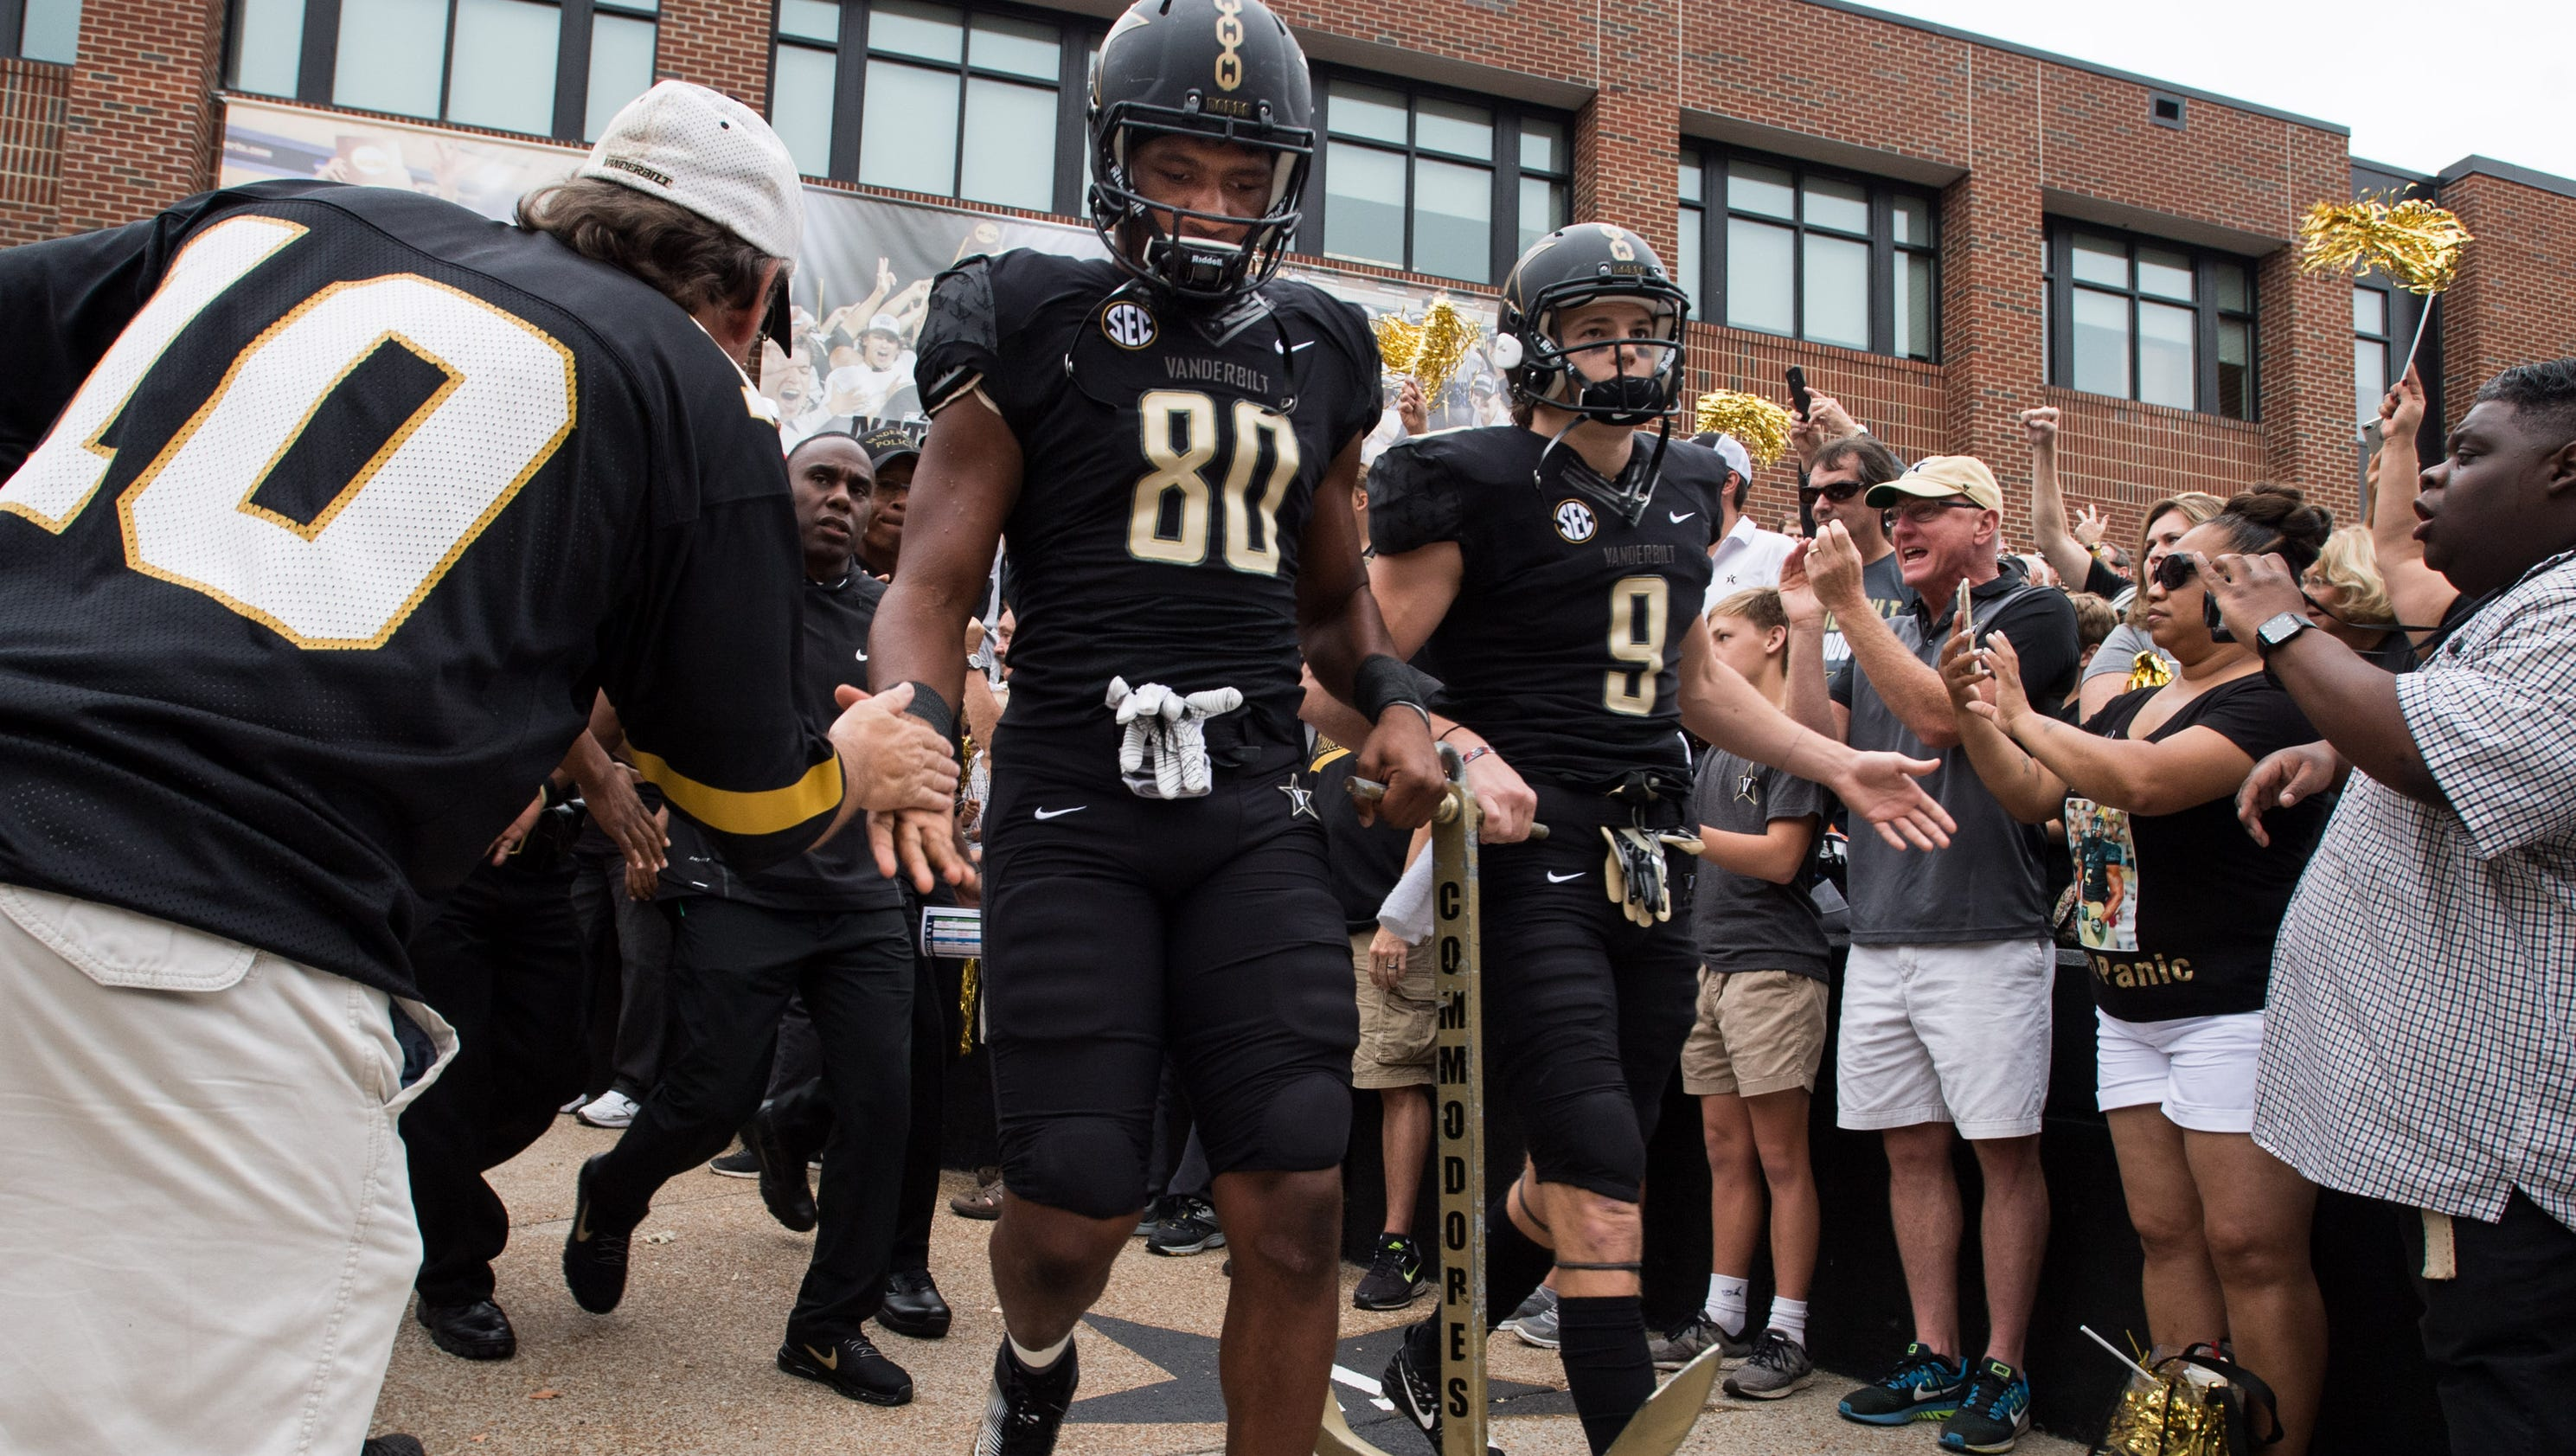 636429729003411885-vandy-georgia-fb-12